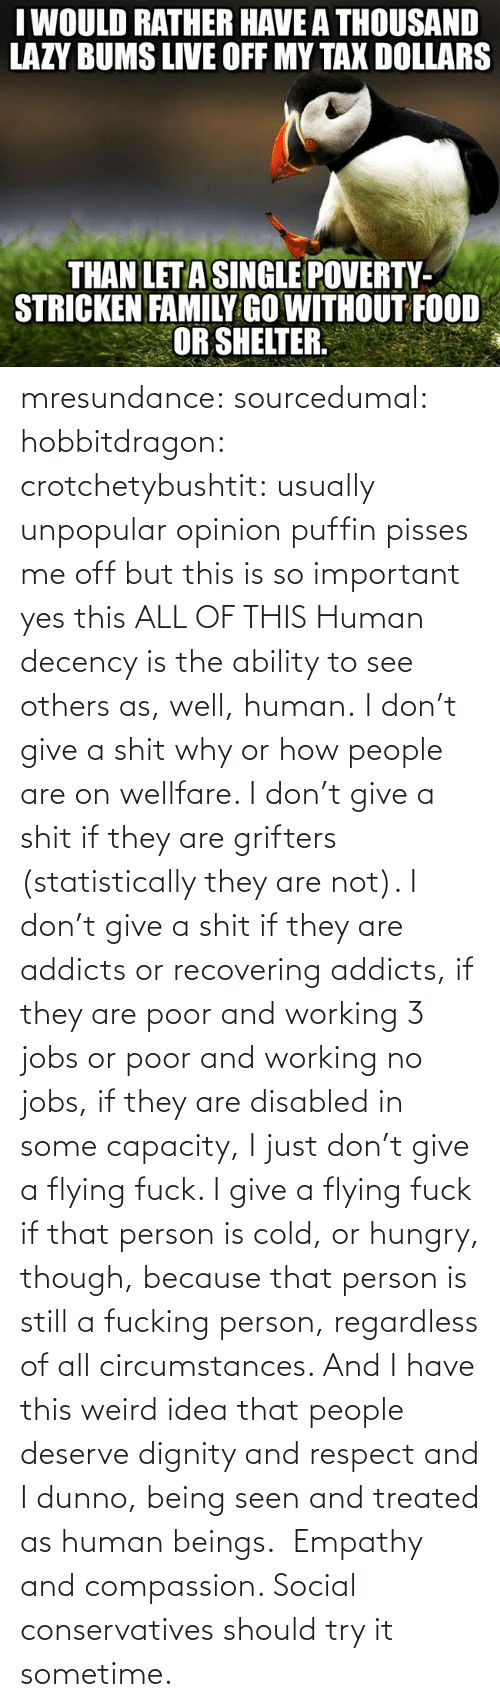 Hungry, Respect, and Target: mresundance: sourcedumal:  hobbitdragon:  crotchetybushtit:  usually unpopular opinion puffin pisses me off but this is so important  yes this  ALL OF THIS  Human decency is the ability to see others as, well,human.I don't give a shit why or how people are on wellfare. I don't give a shit if they are grifters (statistically they are not). I don't give a shit if they are addicts or recovering addicts, if they are poor and working 3 jobs or poor and working no jobs, if they are disabled in some capacity, I just don't give a flying fuck. I give a flying fuck if that person is cold, or hungry, though, because that person is still a fucking person, regardless of all circumstances. And I have this weird idea that people deserve dignity and respect and I dunno, being seen and treated as human beings. Empathy and compassion. Social conservatives should try it sometime.